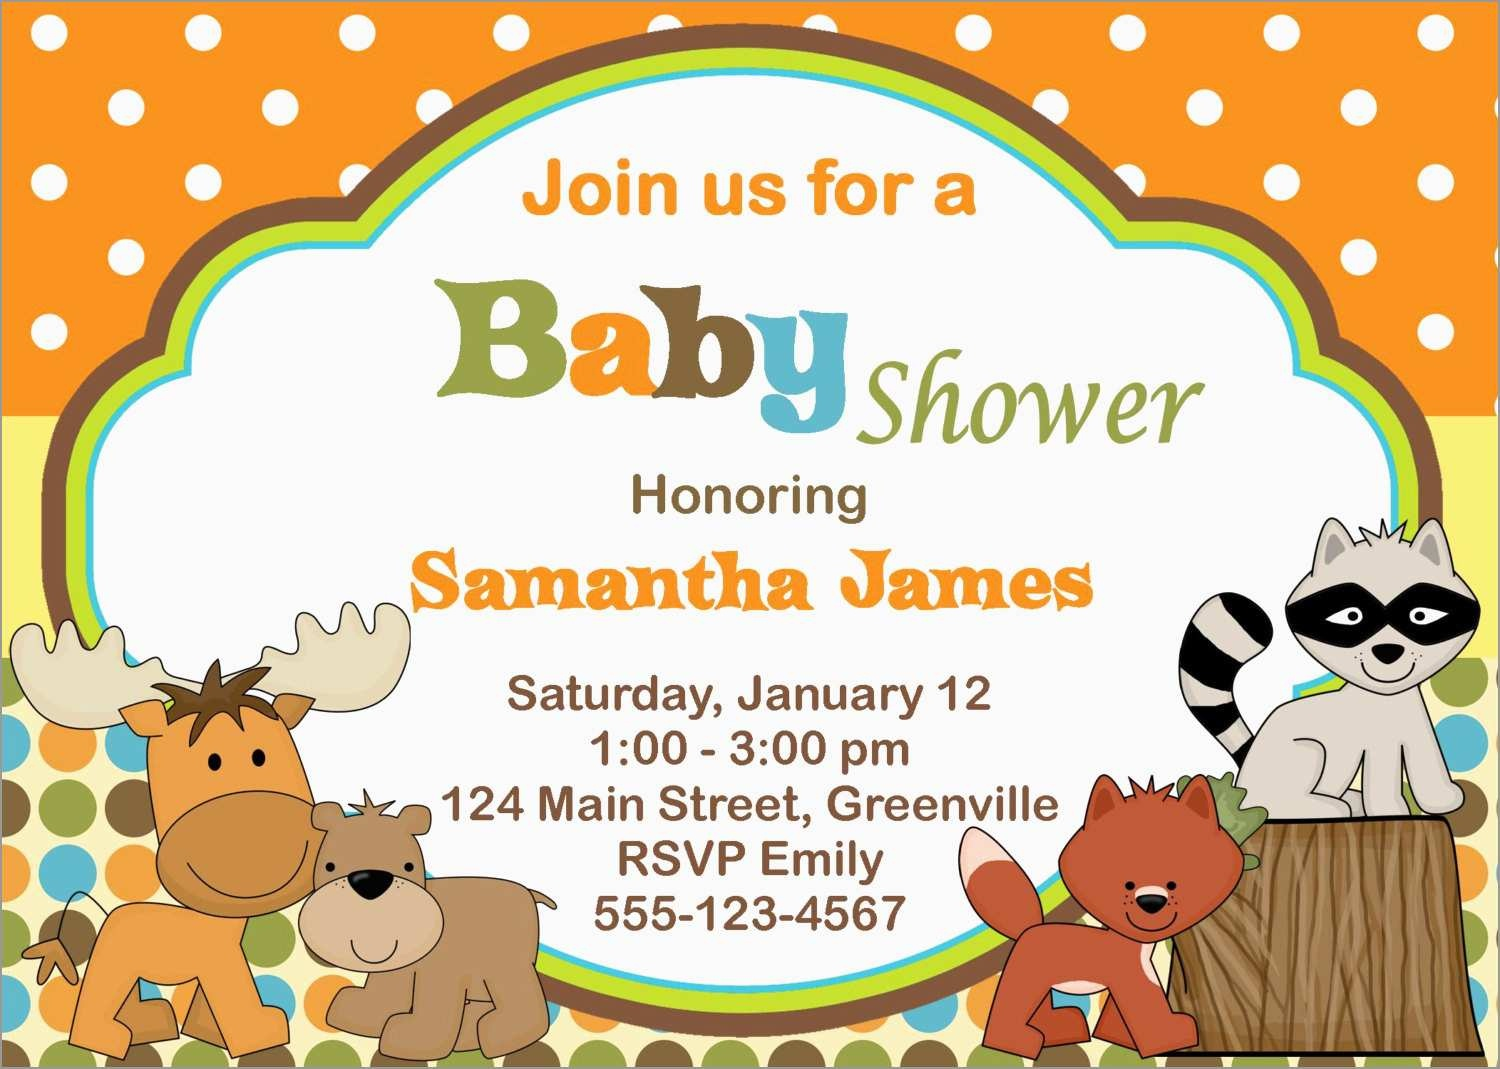 Elegant Free Online Baby Shower Invitations Templates | Best Of Template - Free Baby Shower Invitation Maker Online Printable